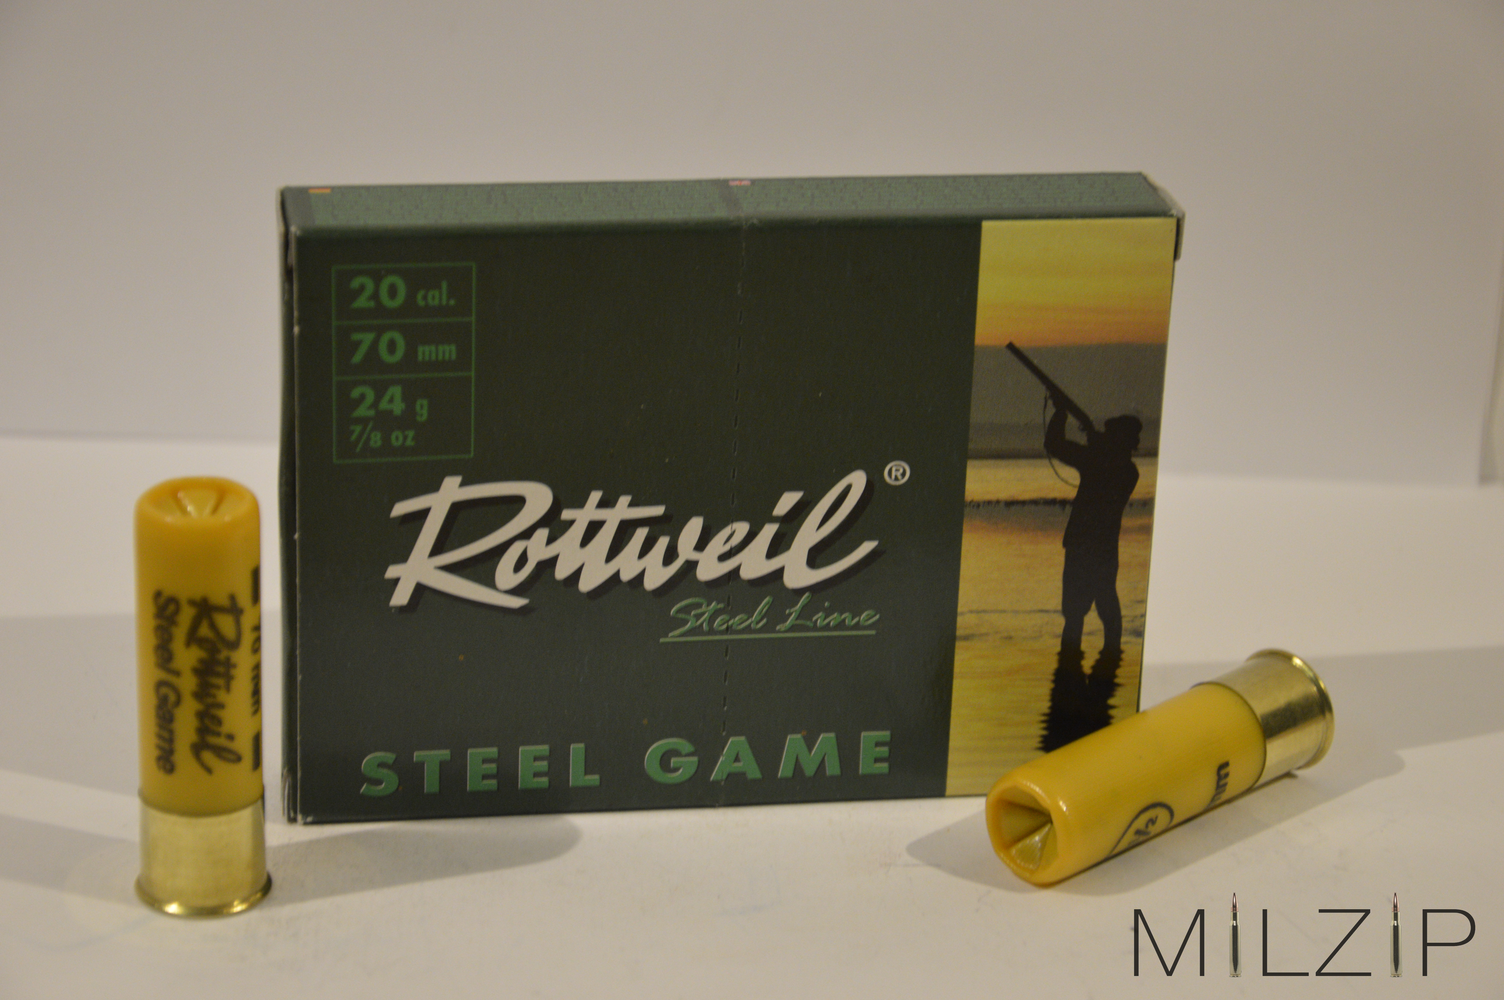 Rottweil Steel Game 20/70 2,6mm 24g